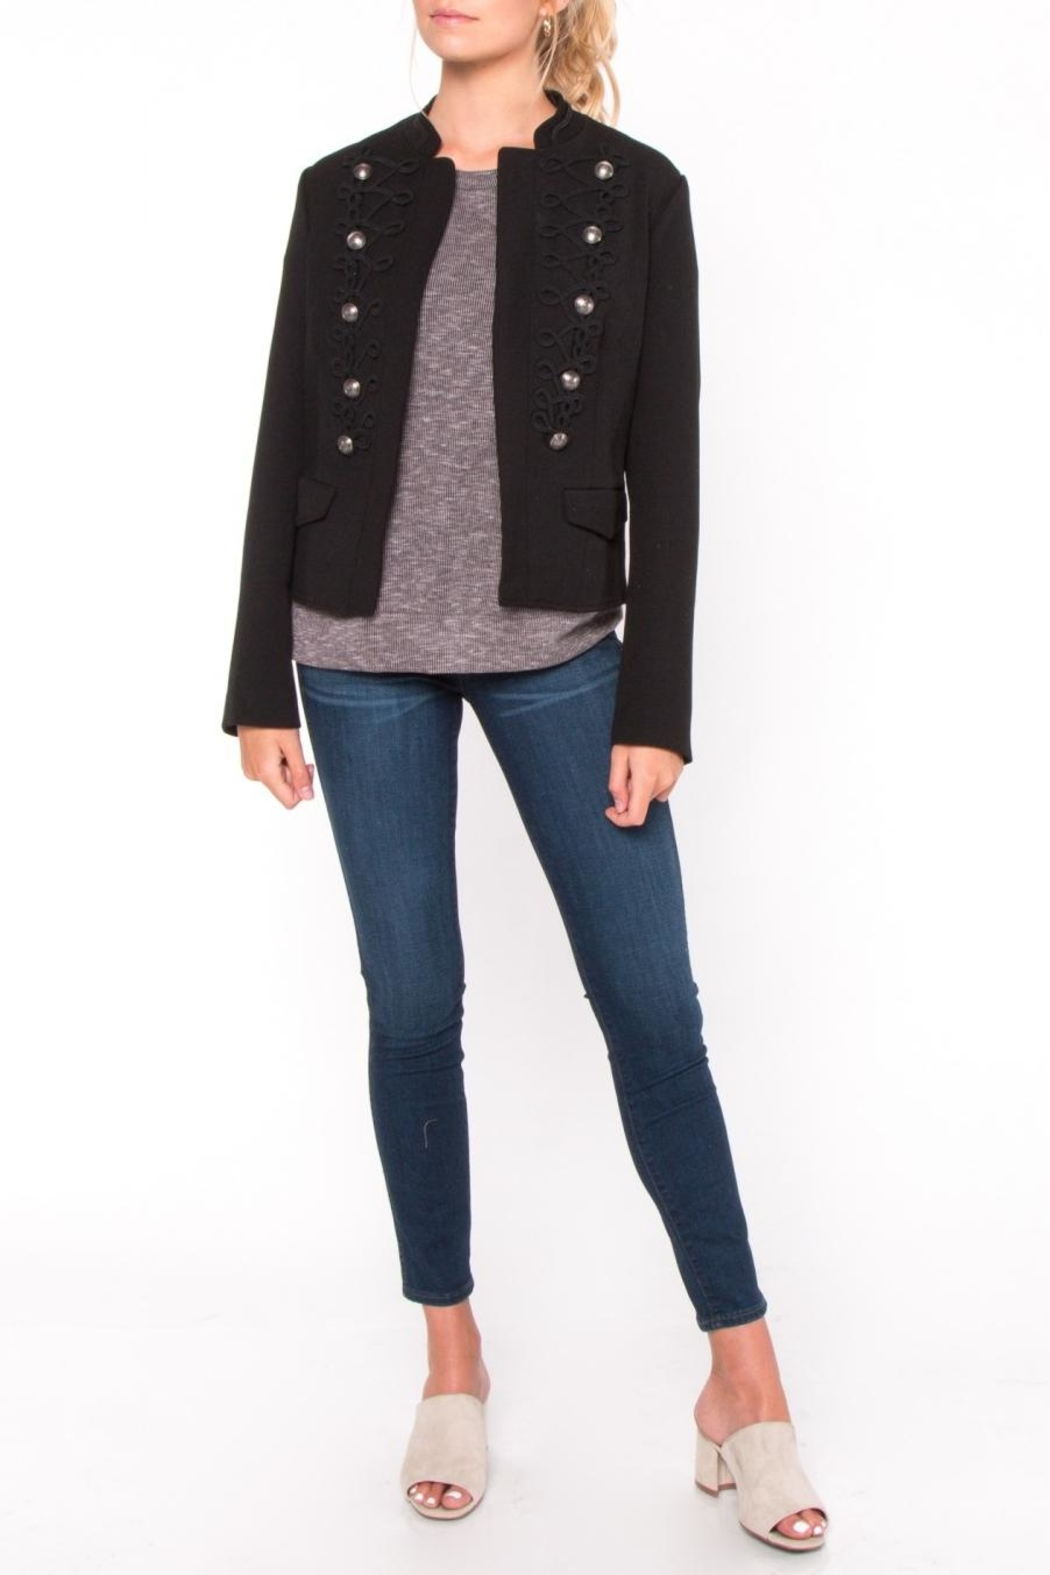 Everly Embroidered Button Jacket - Front Full Image